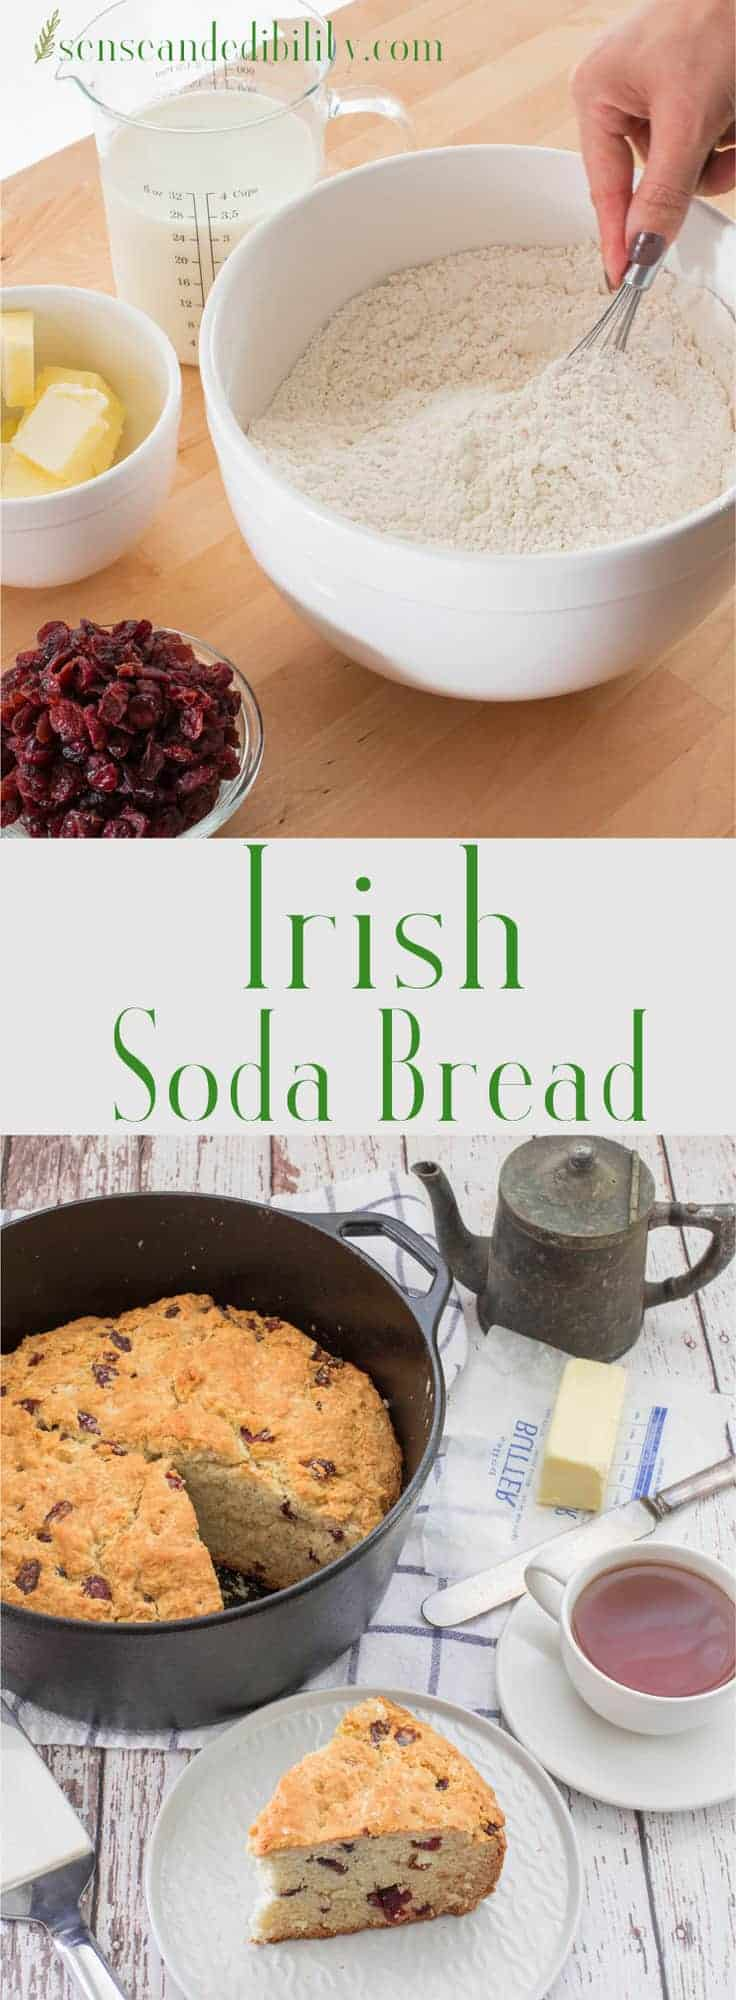 Sense & Edibility's Irish Soda Bread Pin